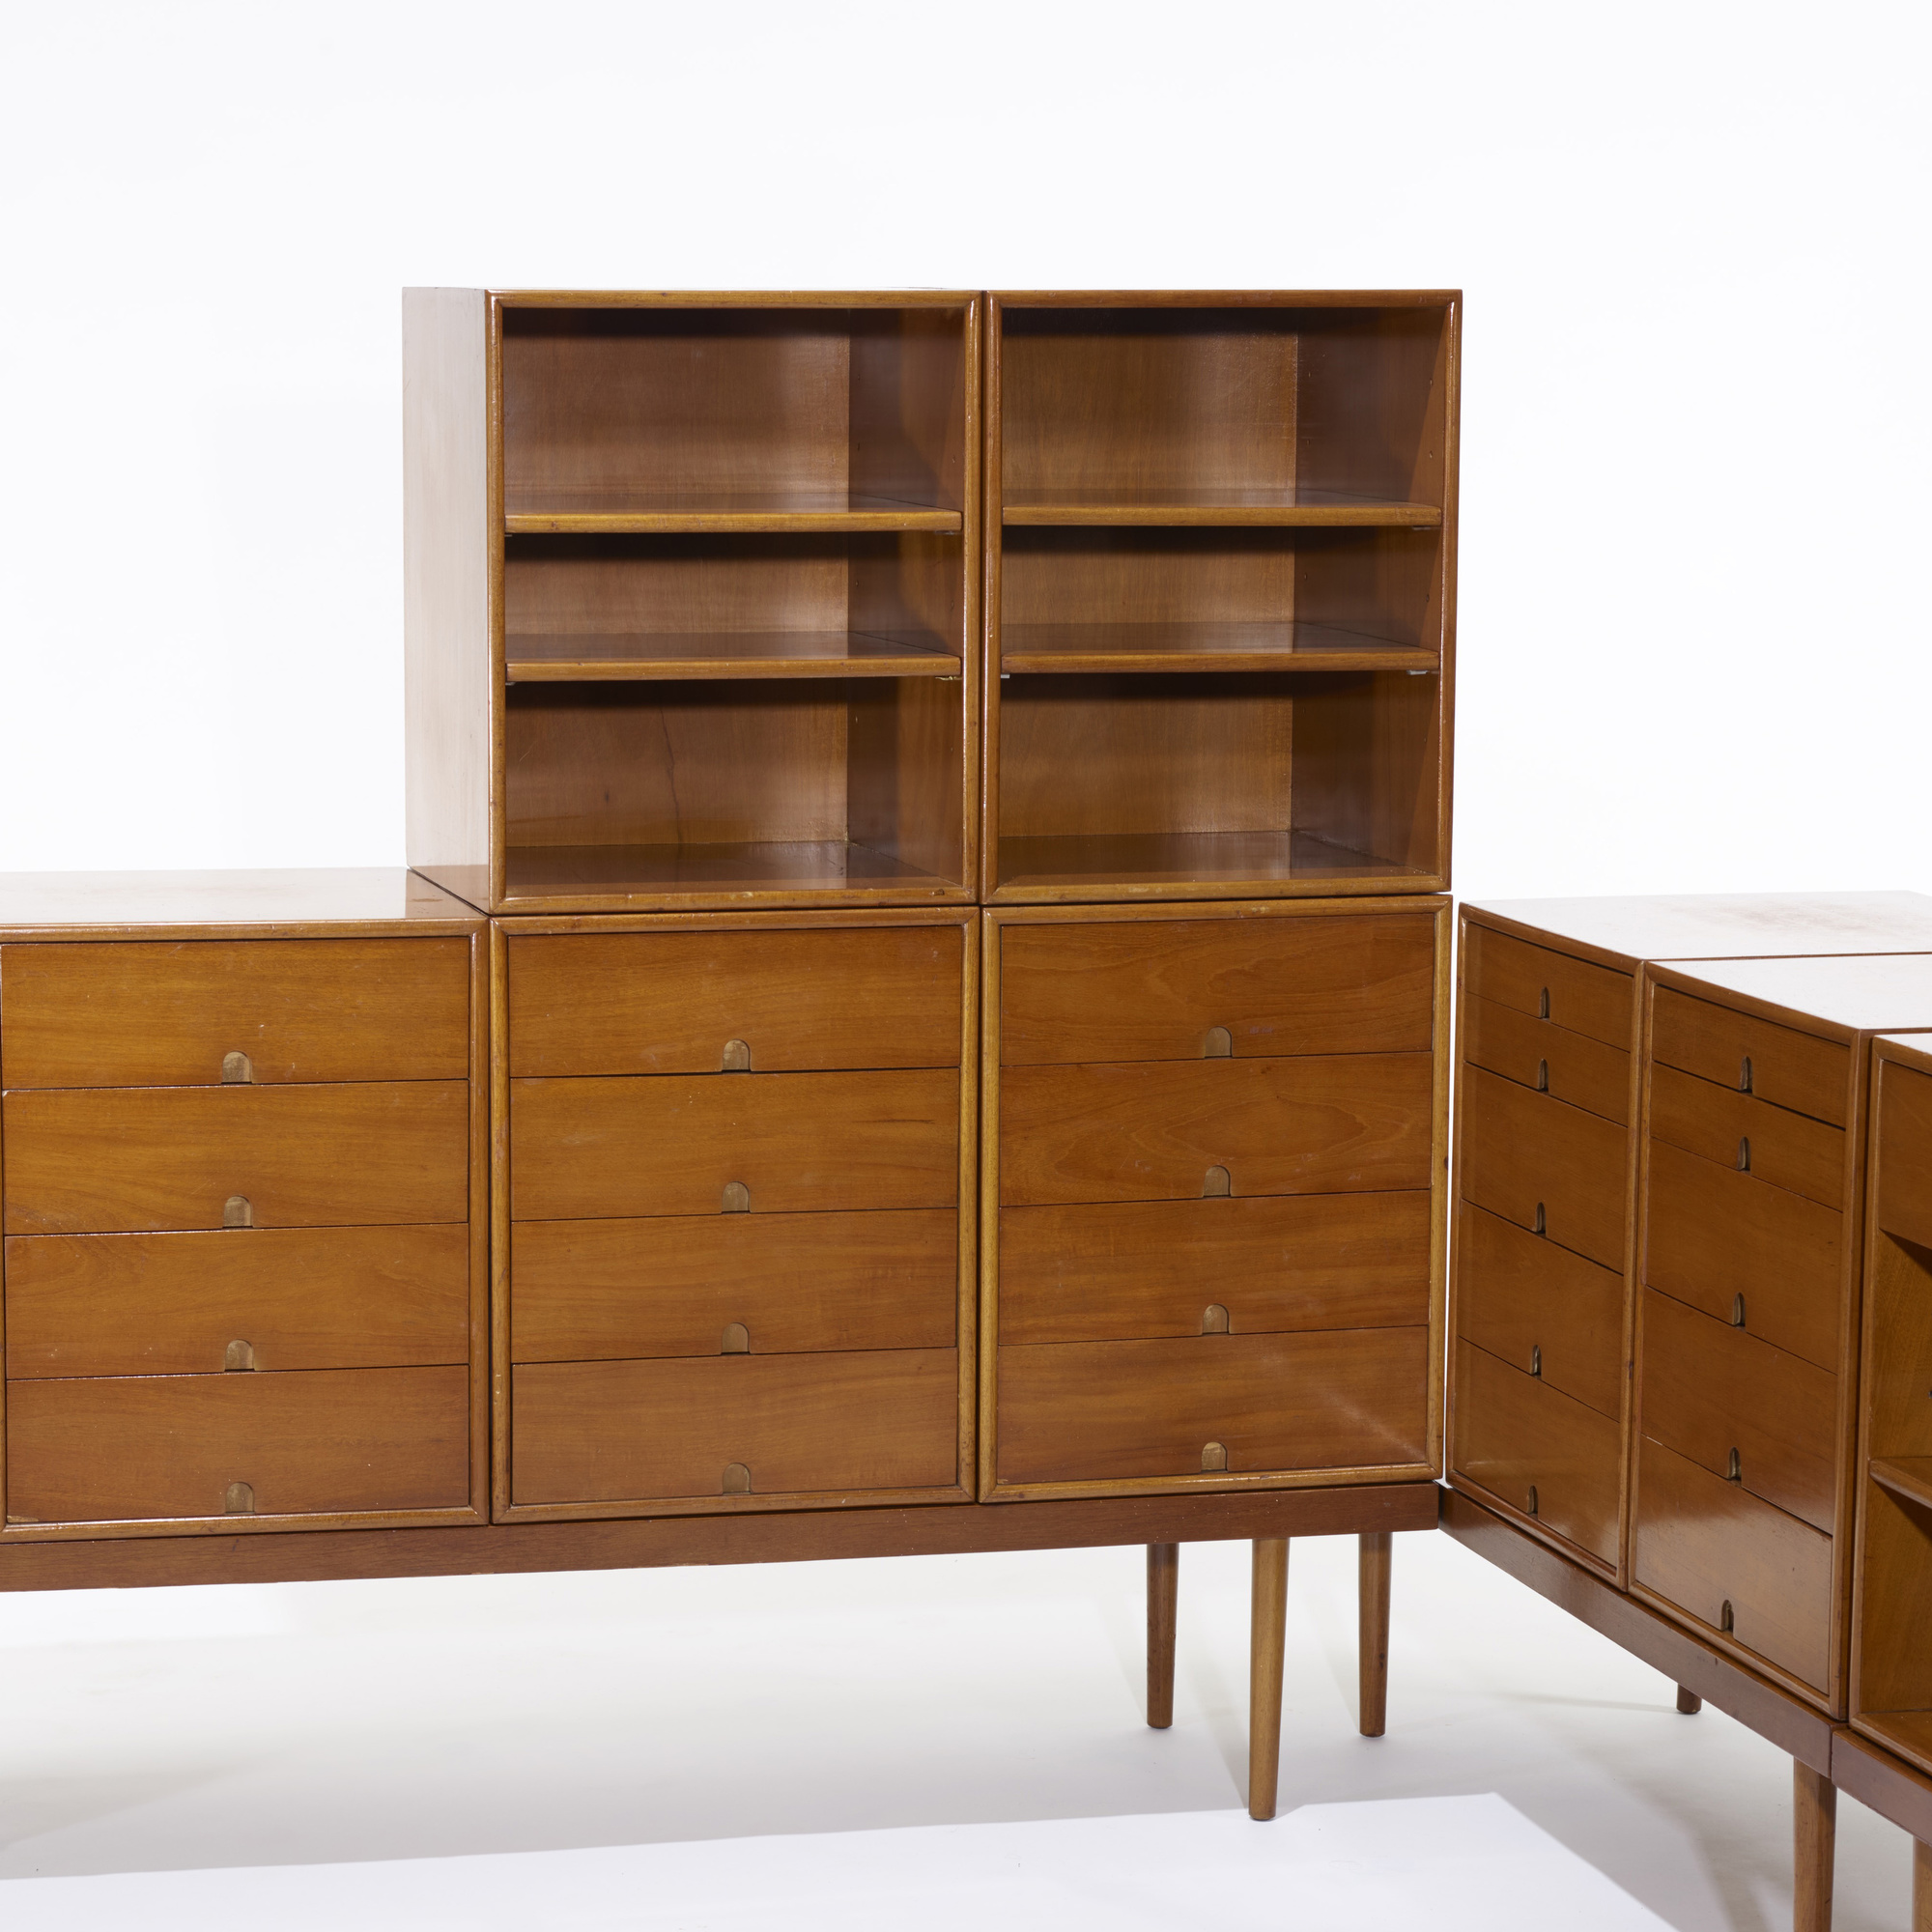 ... 120 Charles Eames and Eero Saarinen / storage units for the Organic Design Competition (  sc 1 st  Wright Auctions & 120: CHARLES EAMES AND EERO SAARINEN storage units for the Organic ...